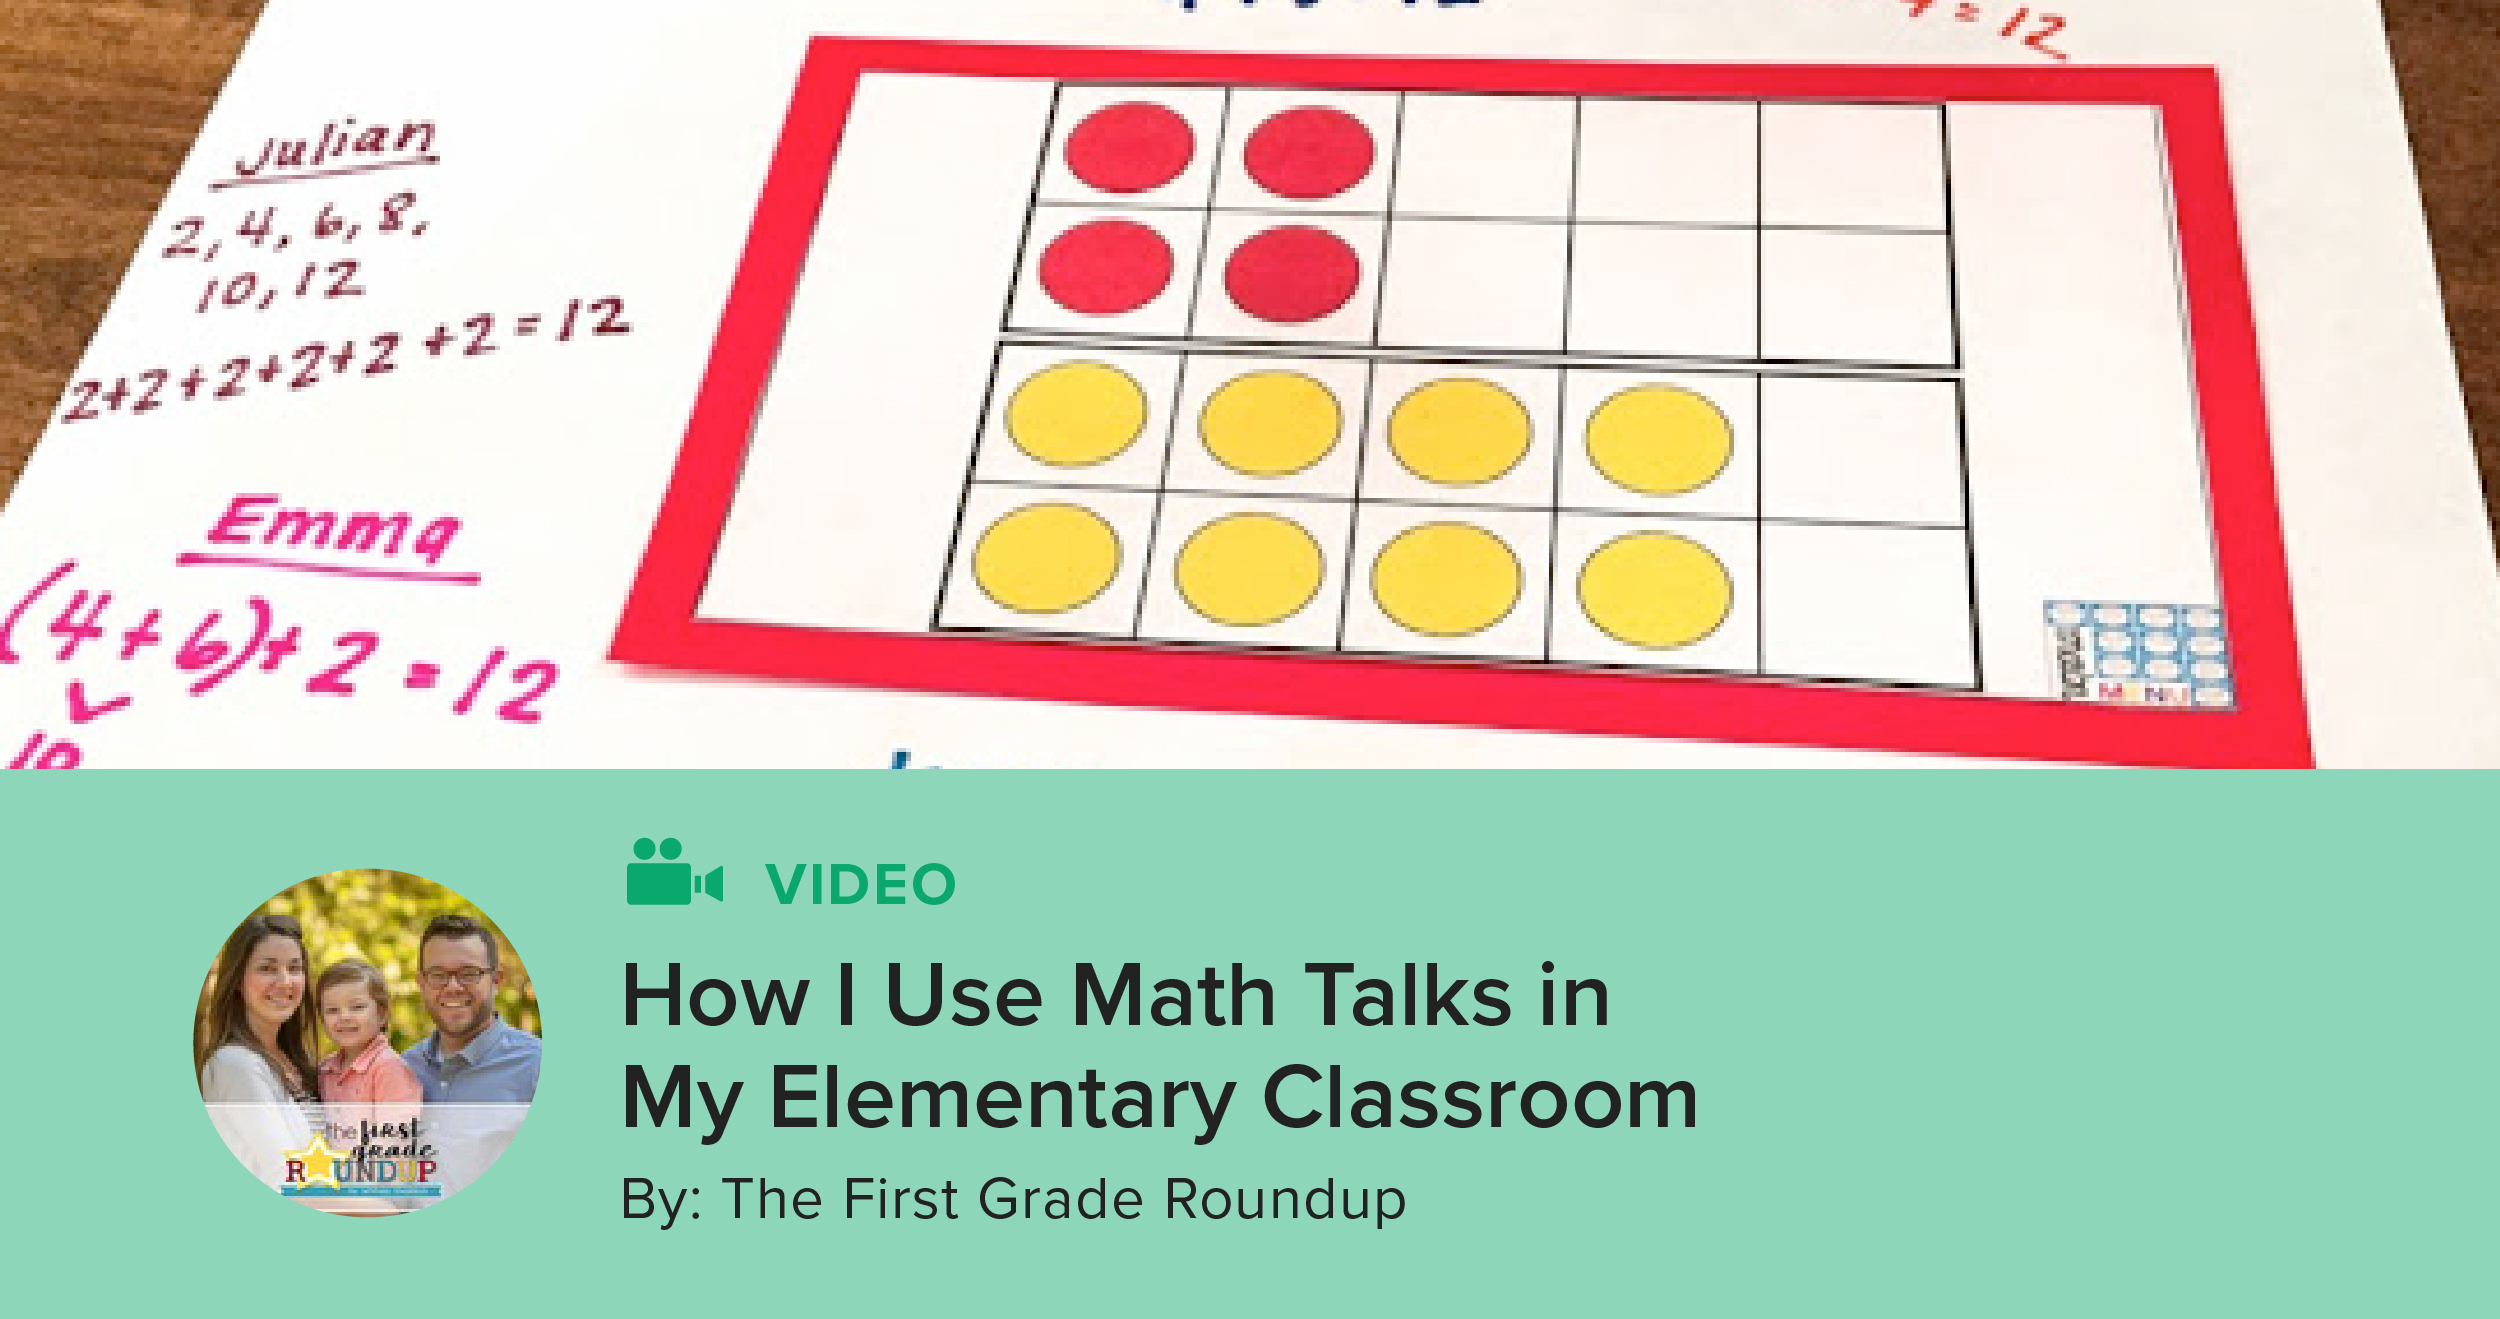 How I Use Math Talks in My Elementary Classroom | The TpT Blog